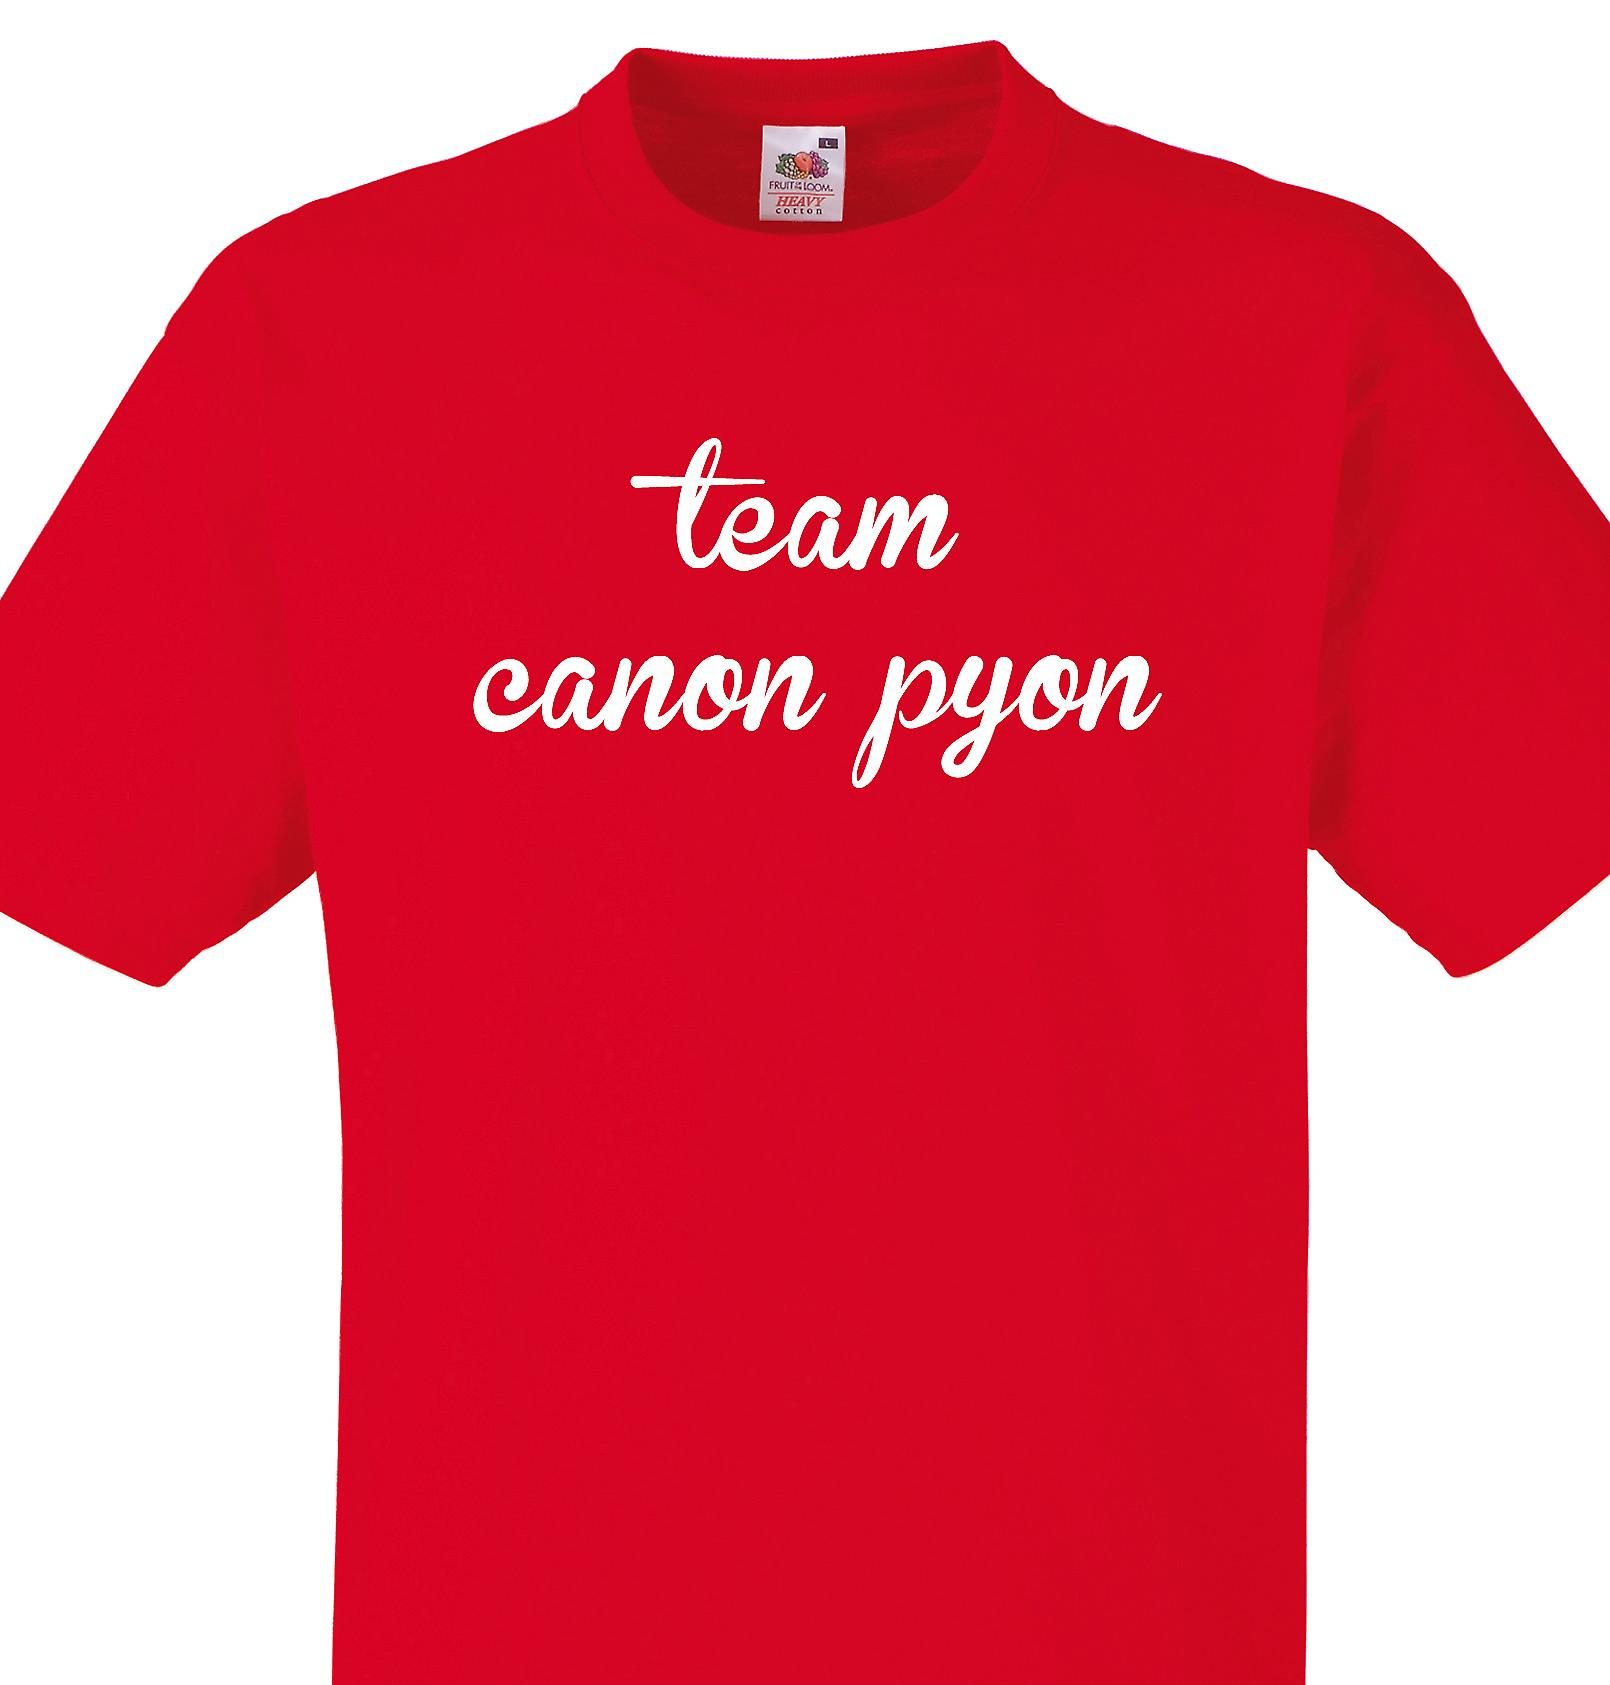 Team Canon pyon Red T shirt